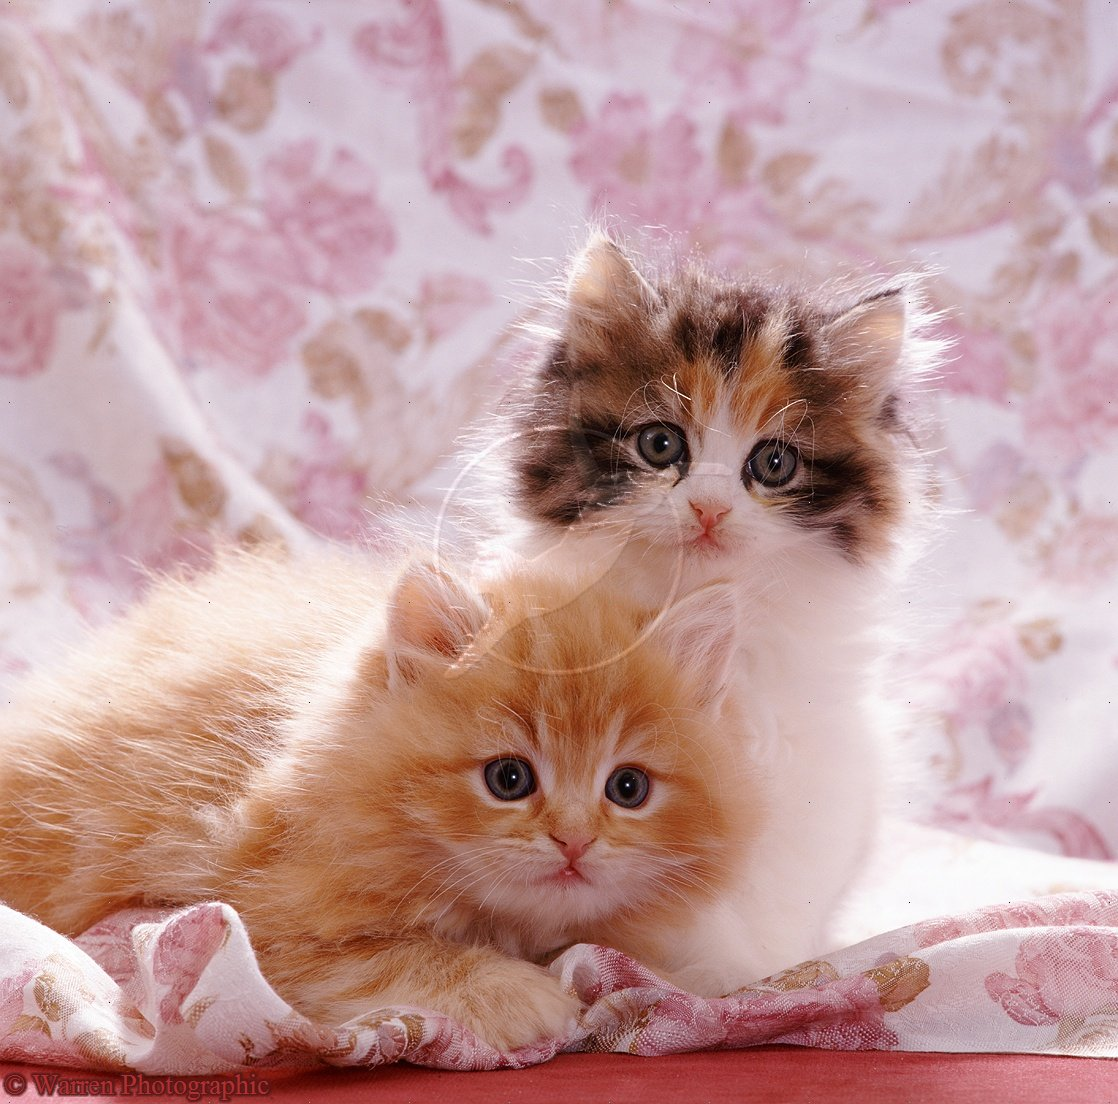 Cute DogsPets Cute Cats and Kittens Pictures and Wallpapers 1118x1104